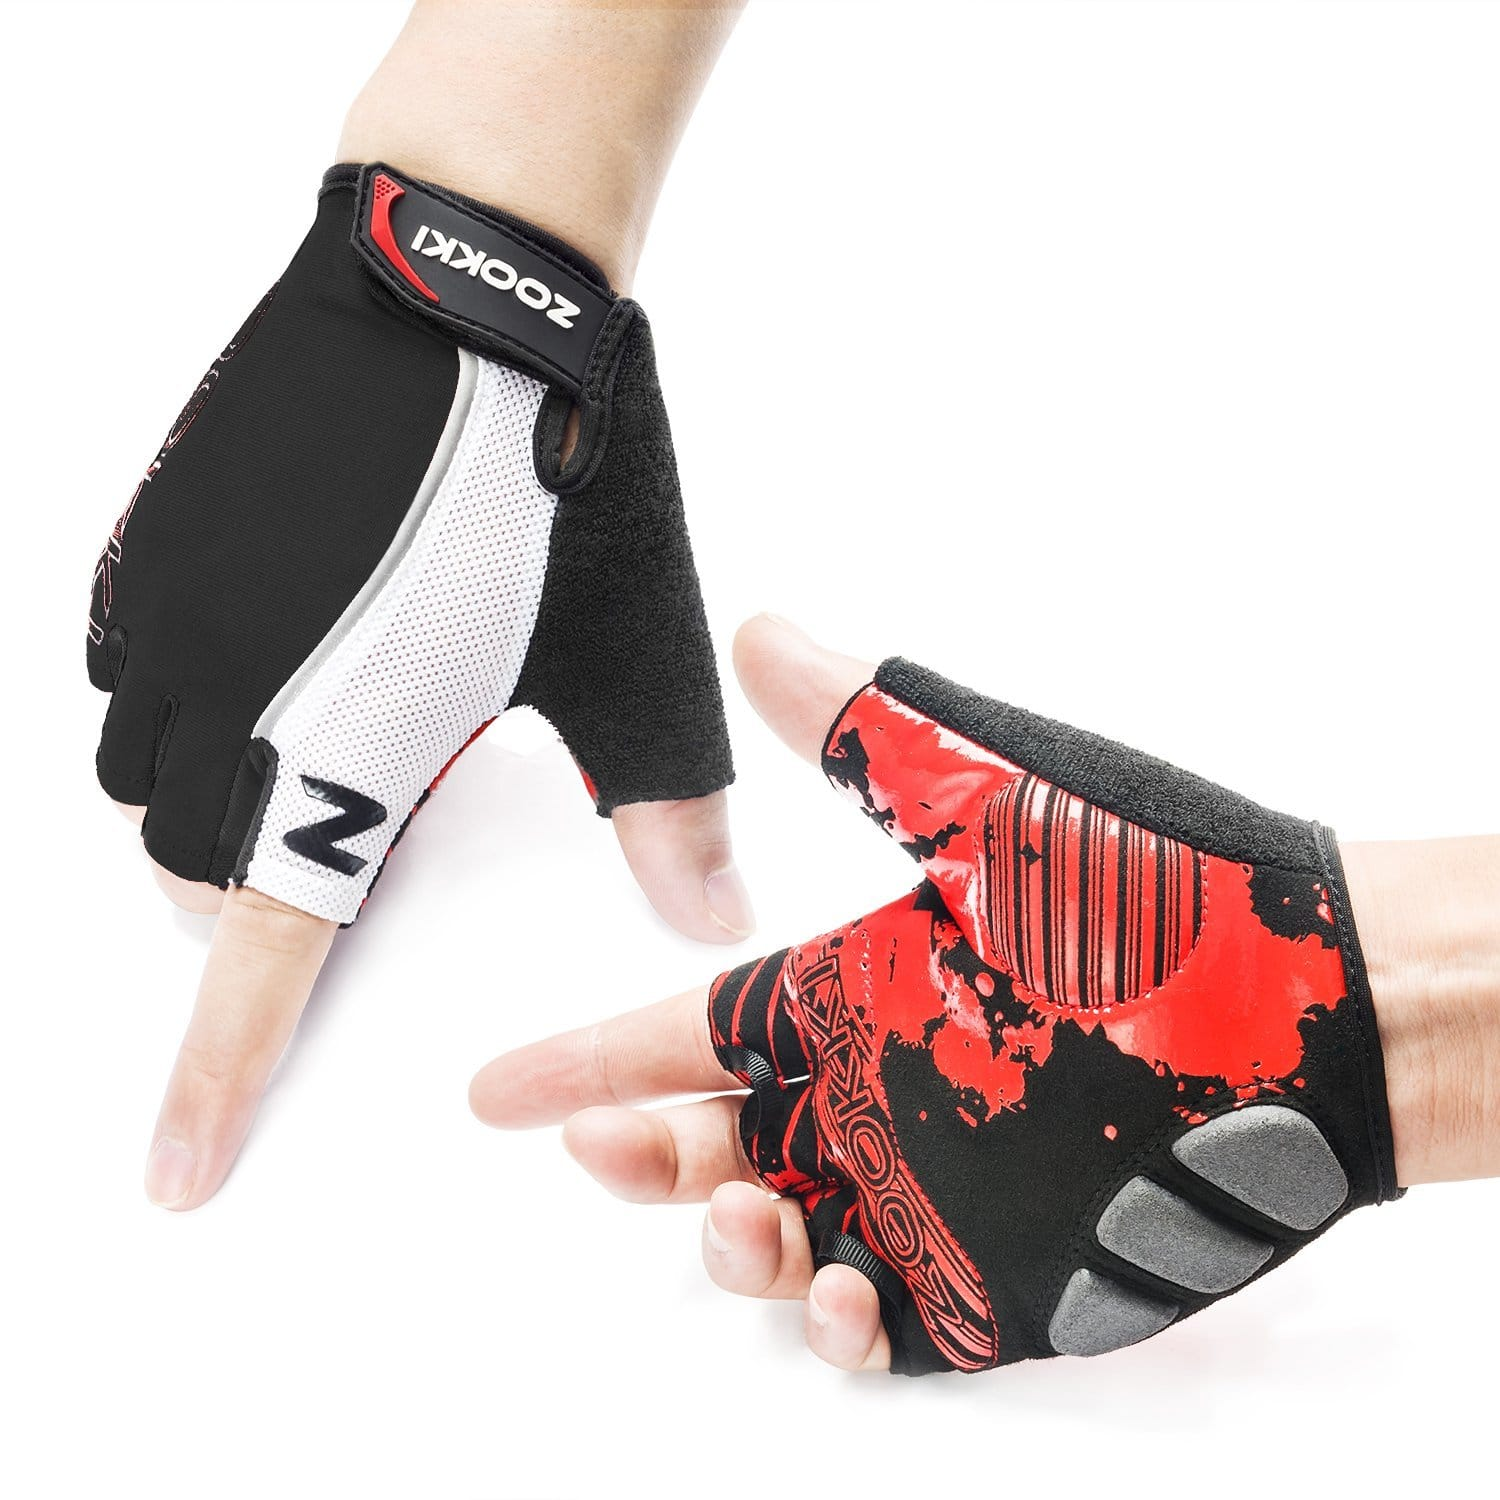 Cycling Mountain Bike Half Finger Biking Gloves (Various Colors) for $5.99 @ Amazon